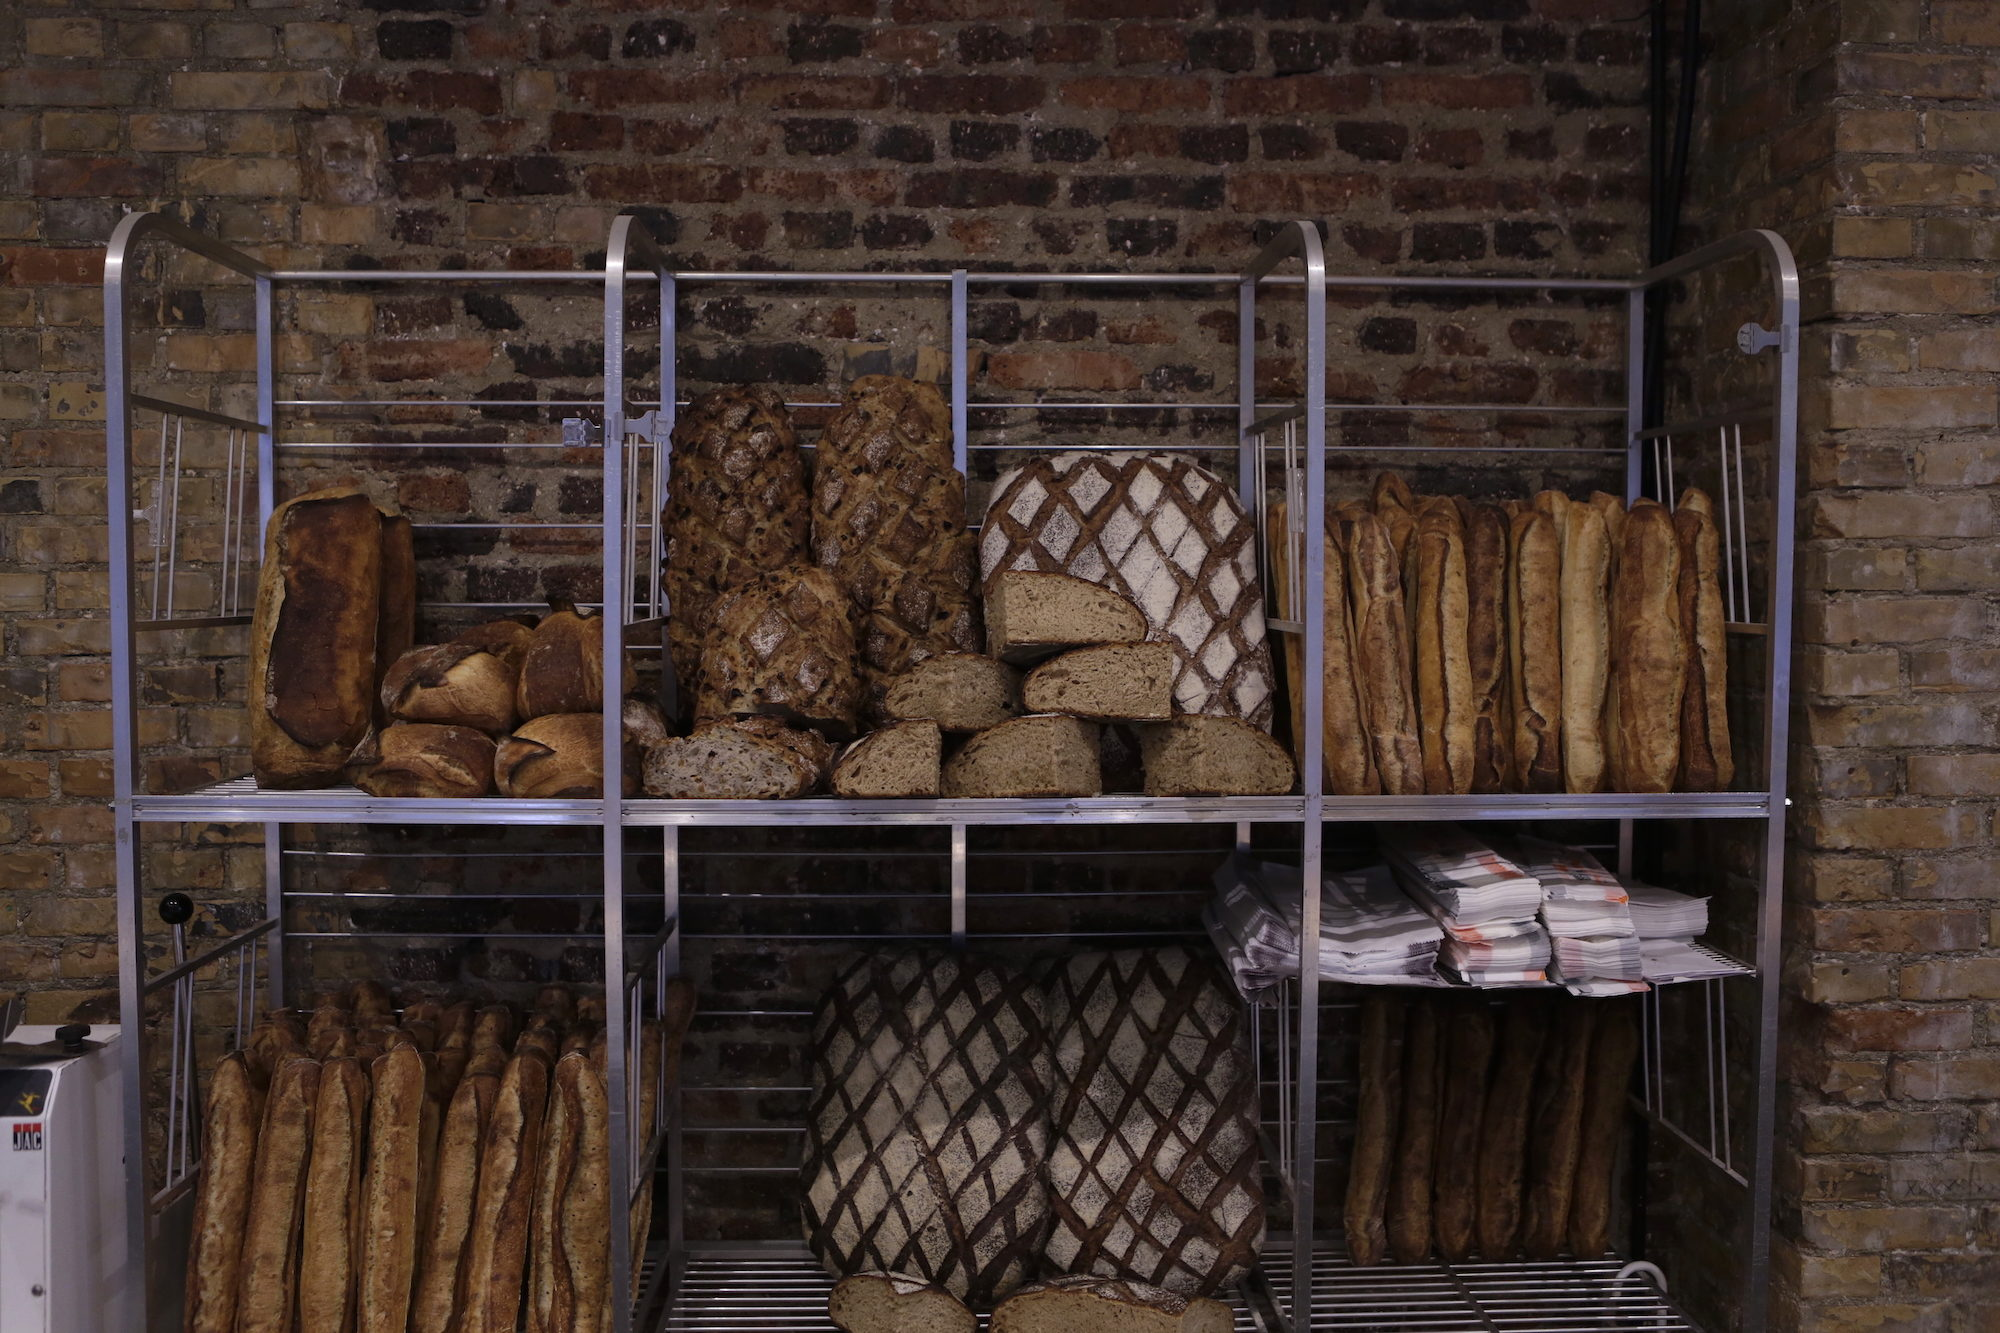 The rustic bread loaves at top Paris bakery Benoit Castel.